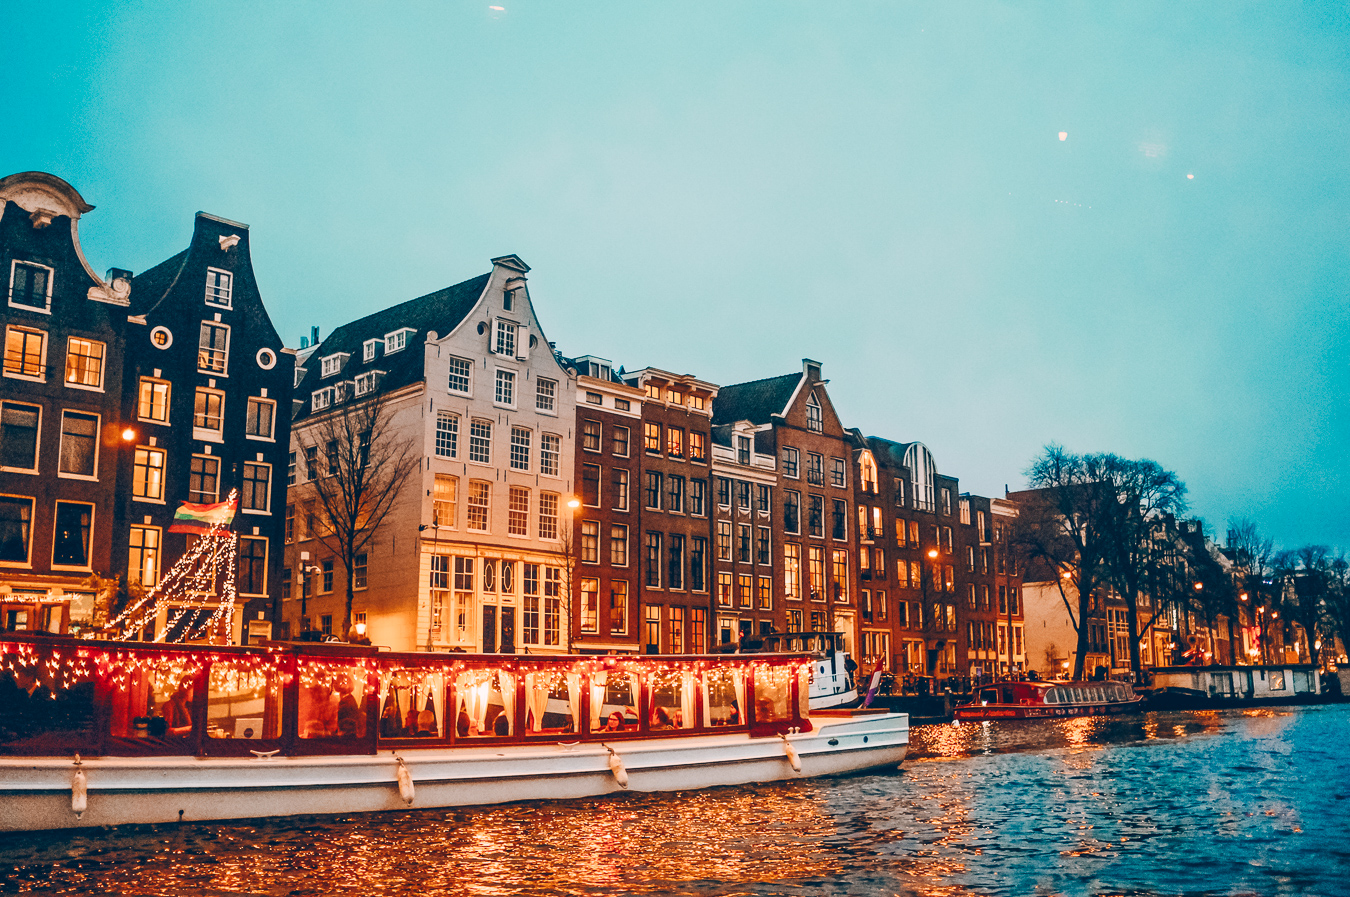 Photogenic place in Amsterdam